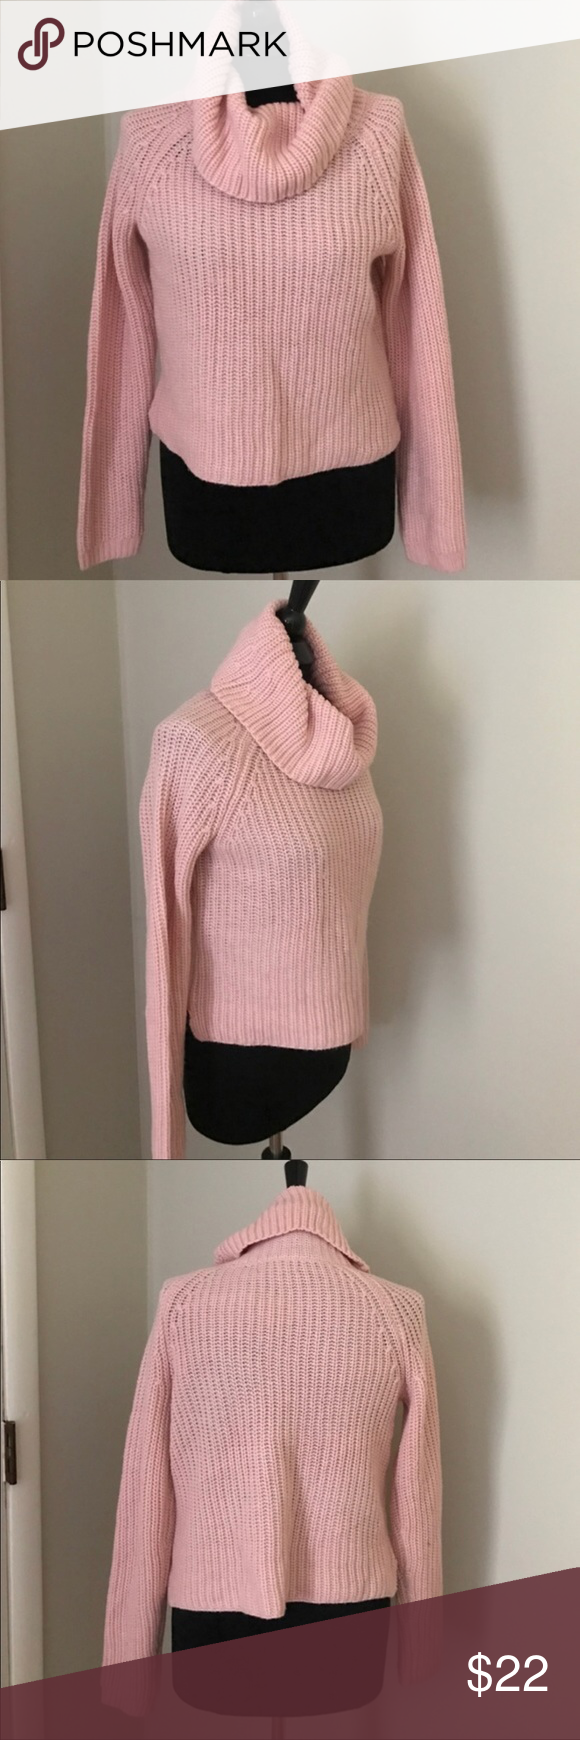 Blush Pink Cropped Knit Sweater Gently worn blush pink cropped ...